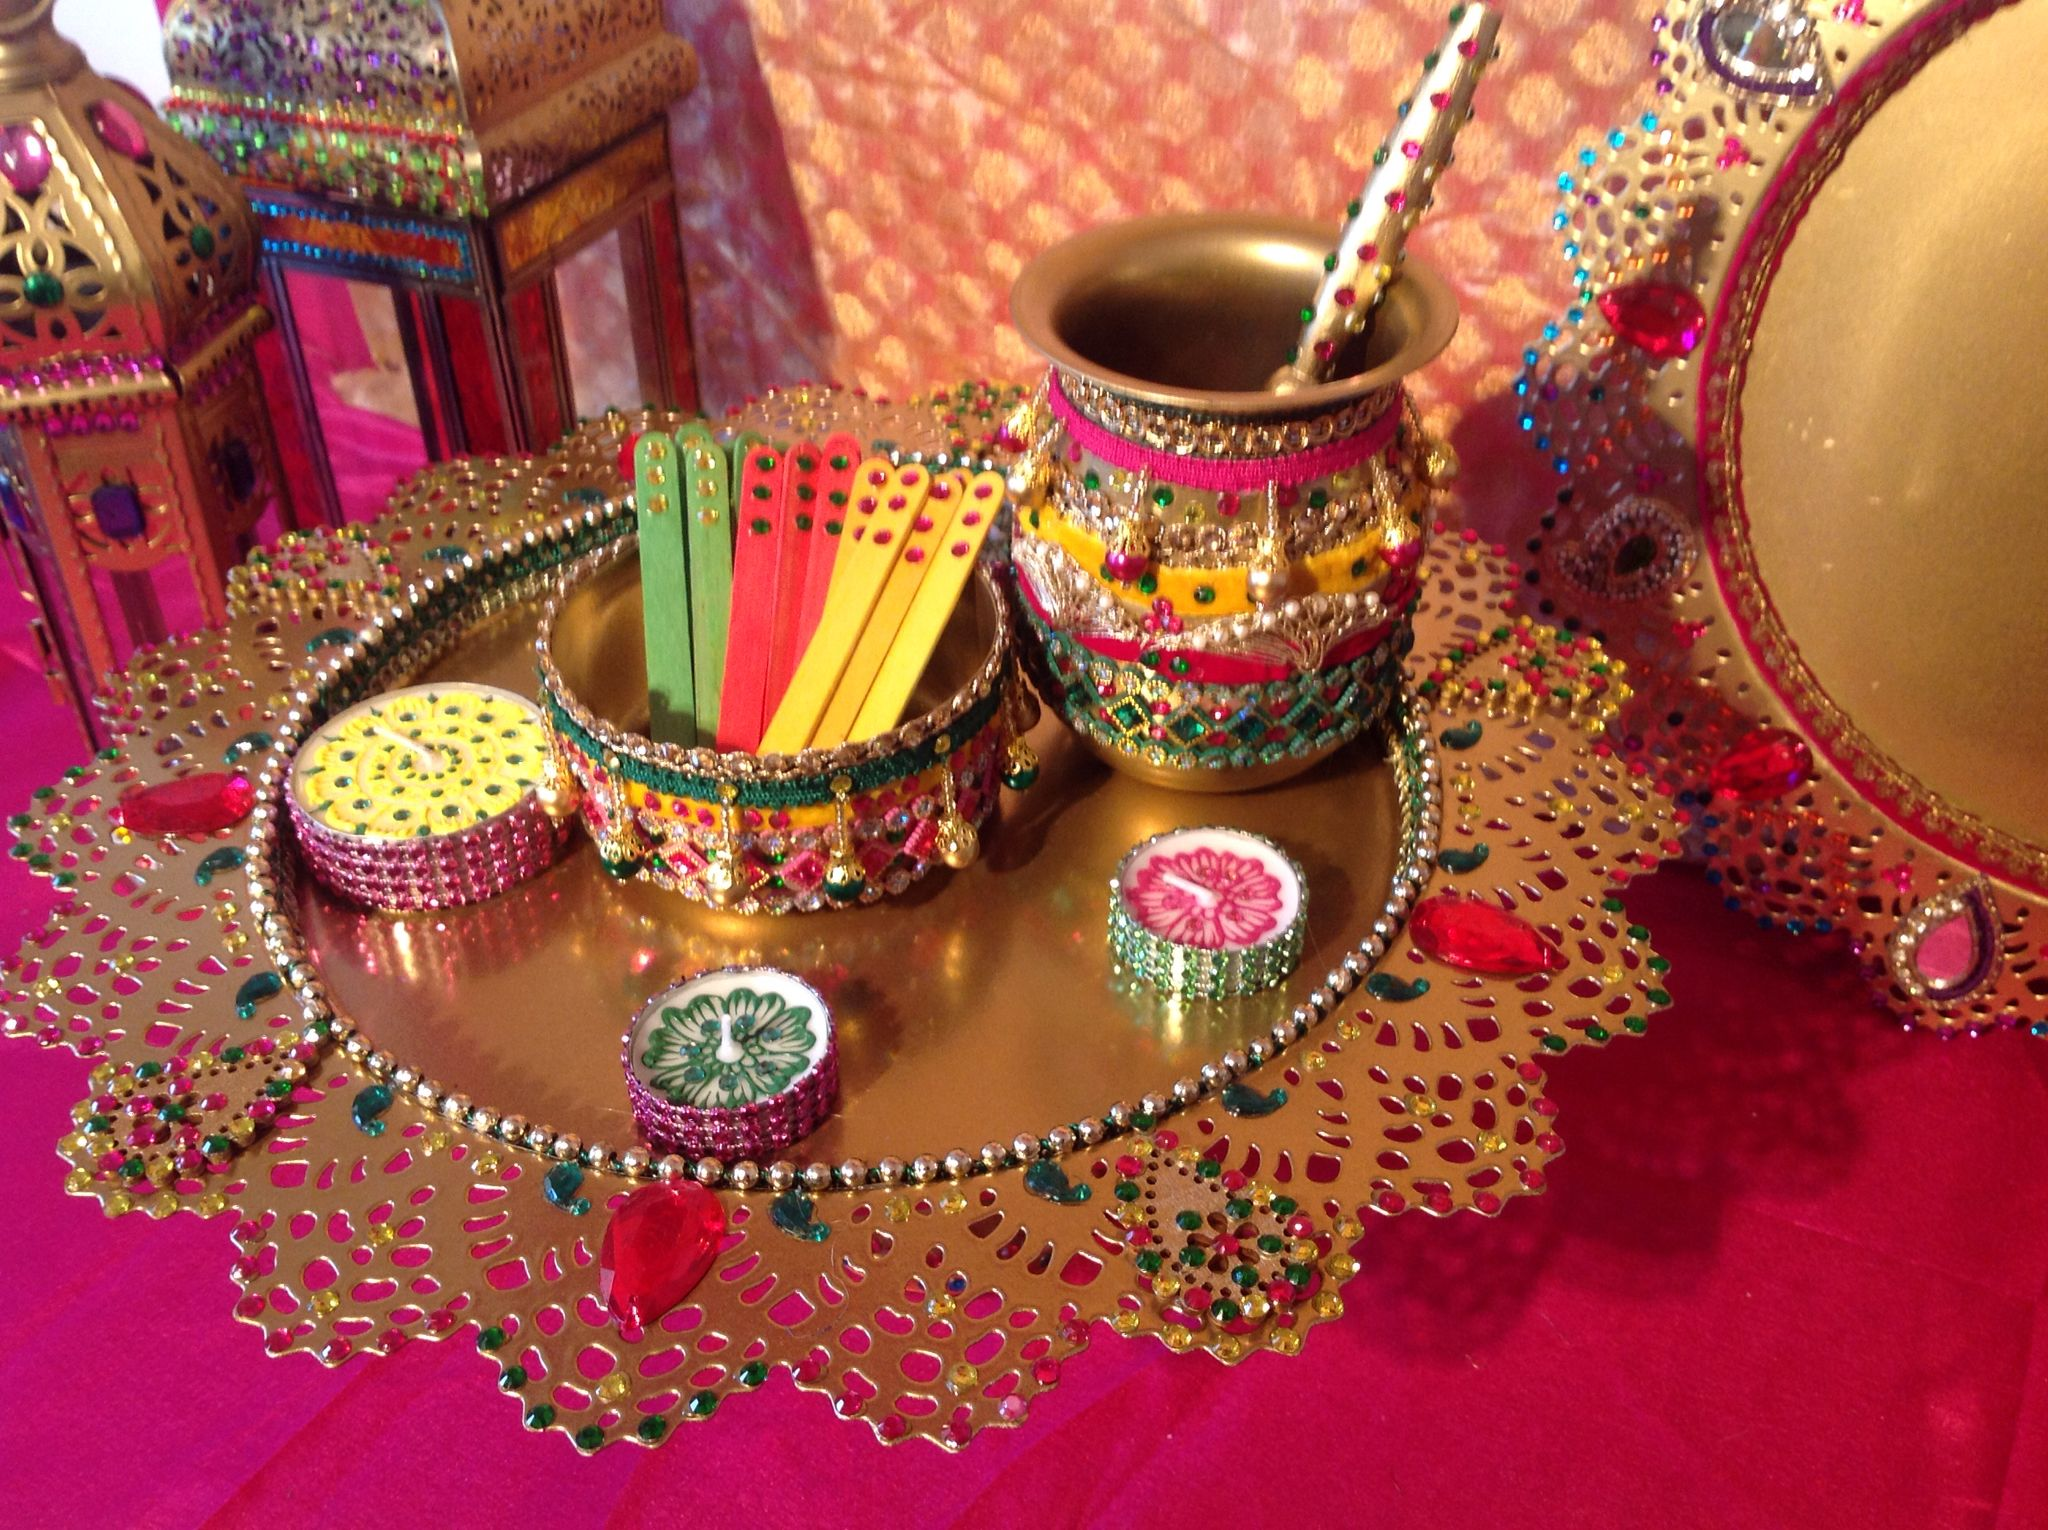 Diy Mehndi Plates : A beautiful mehndi plate complete with oil and pots see my